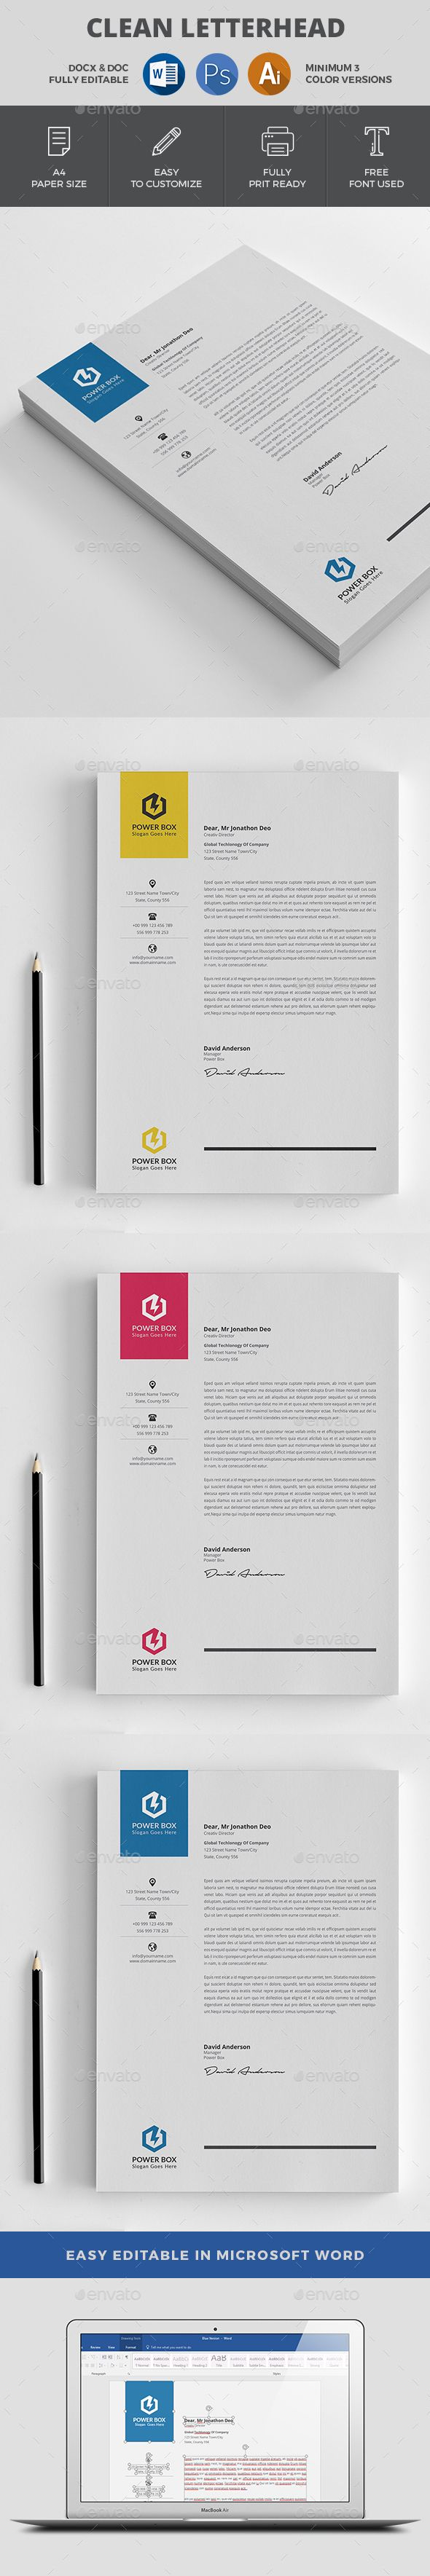 letterhead stationery print templates download here httpsgraphicriver